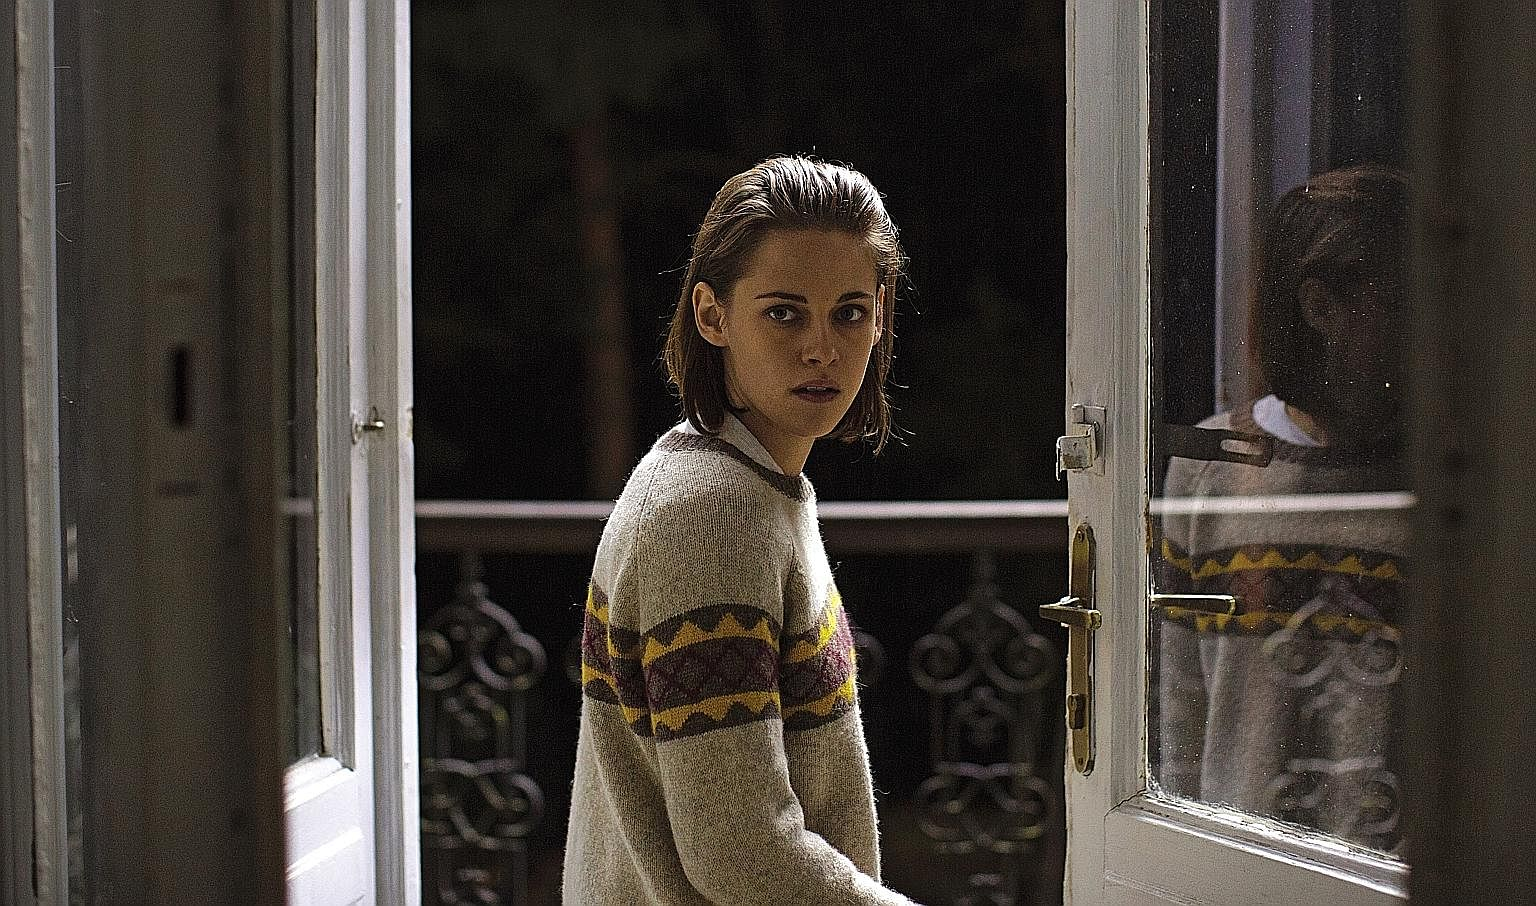 In Personal Shopper, Kristen Stewart plays Maureen, who has a spiritual awakening through what might be a haunting.